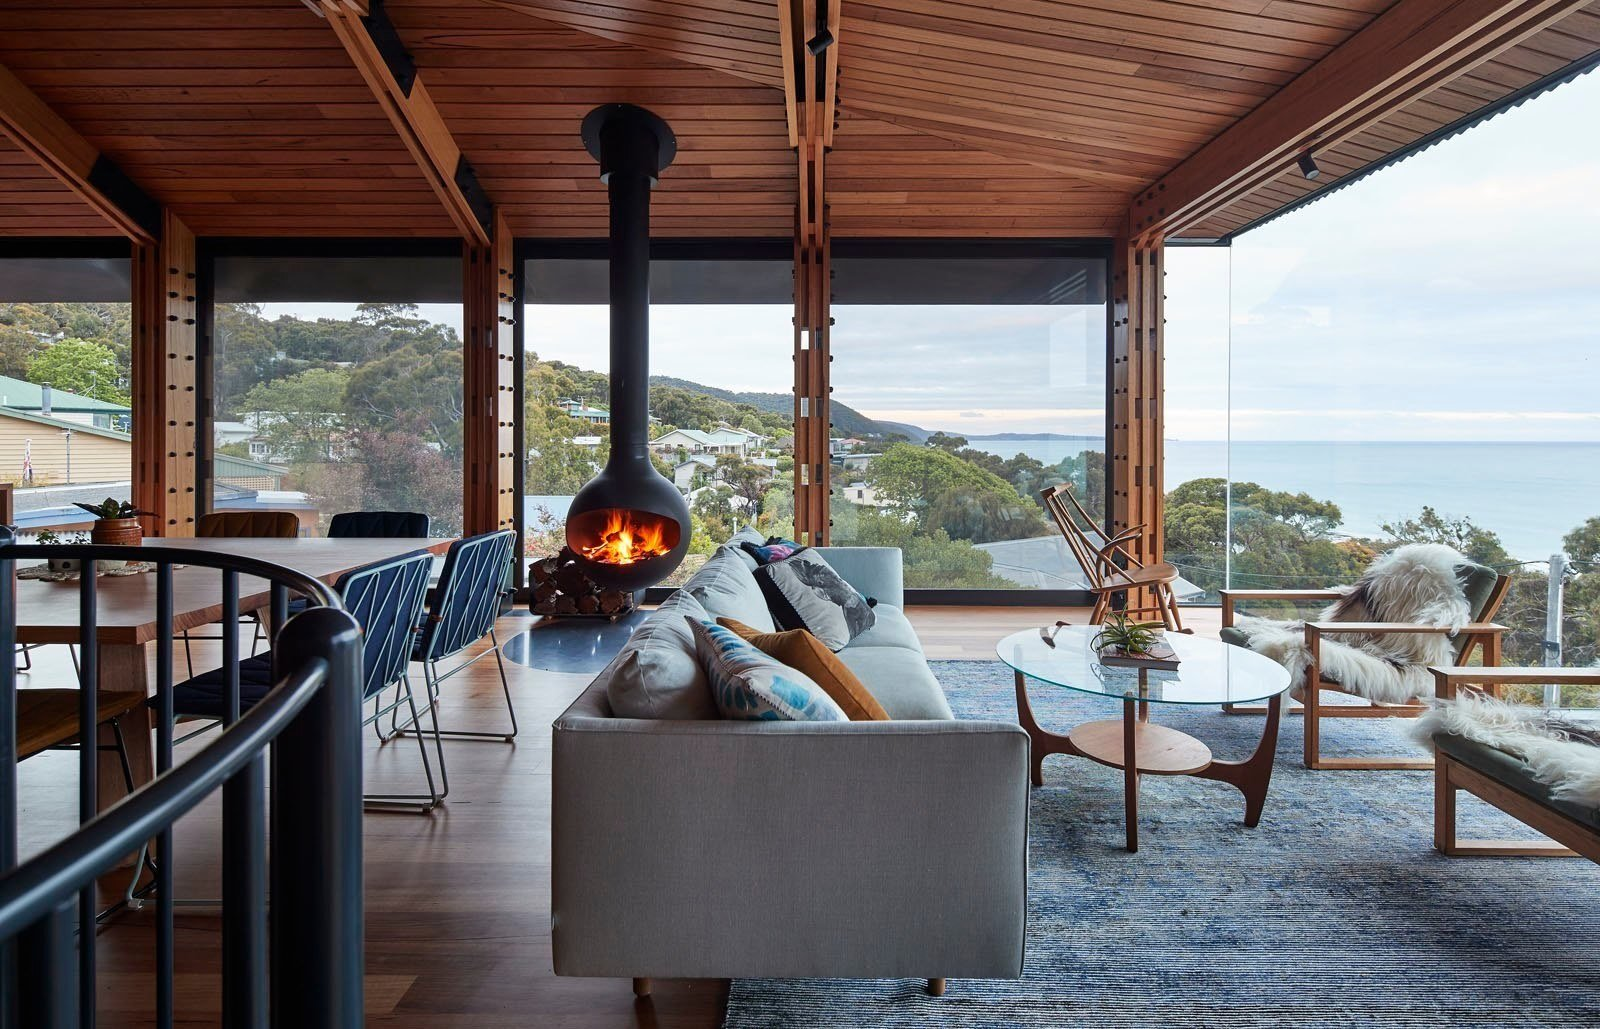 Photo 7 of 12 in A Great Ocean Road Shack With a View Gets a Sustainable Update